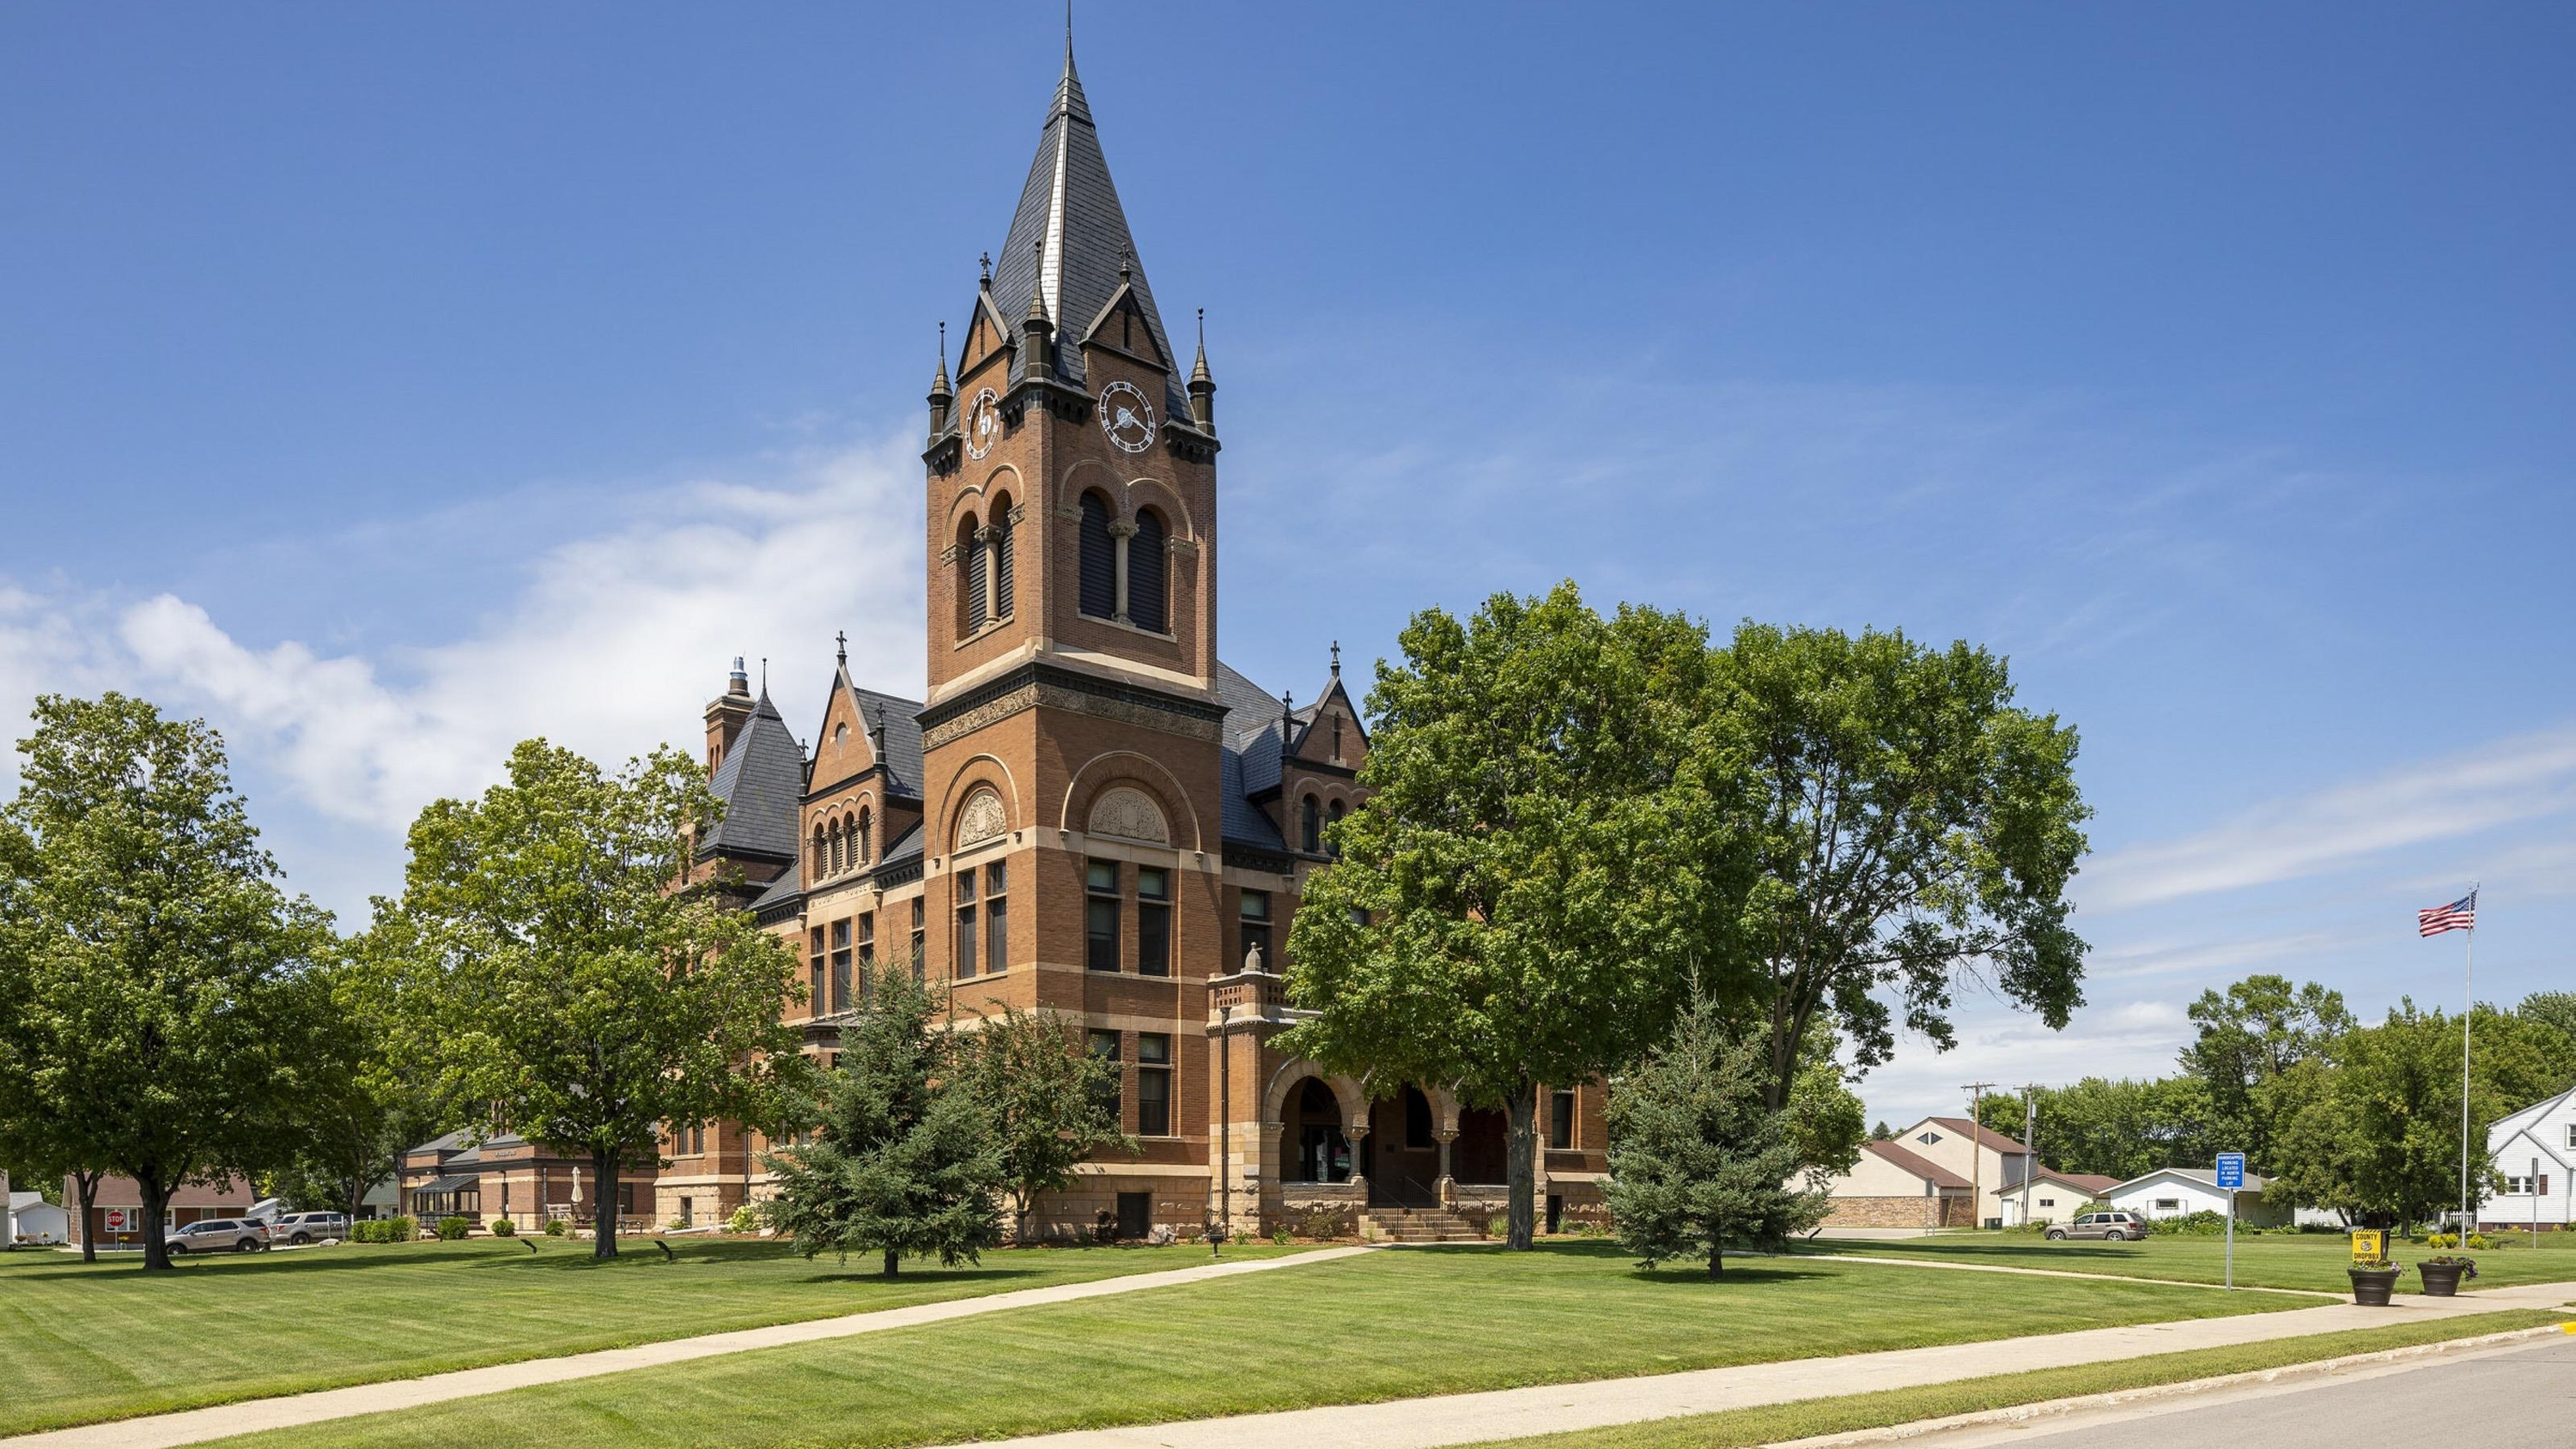 Swift County Courthouse2